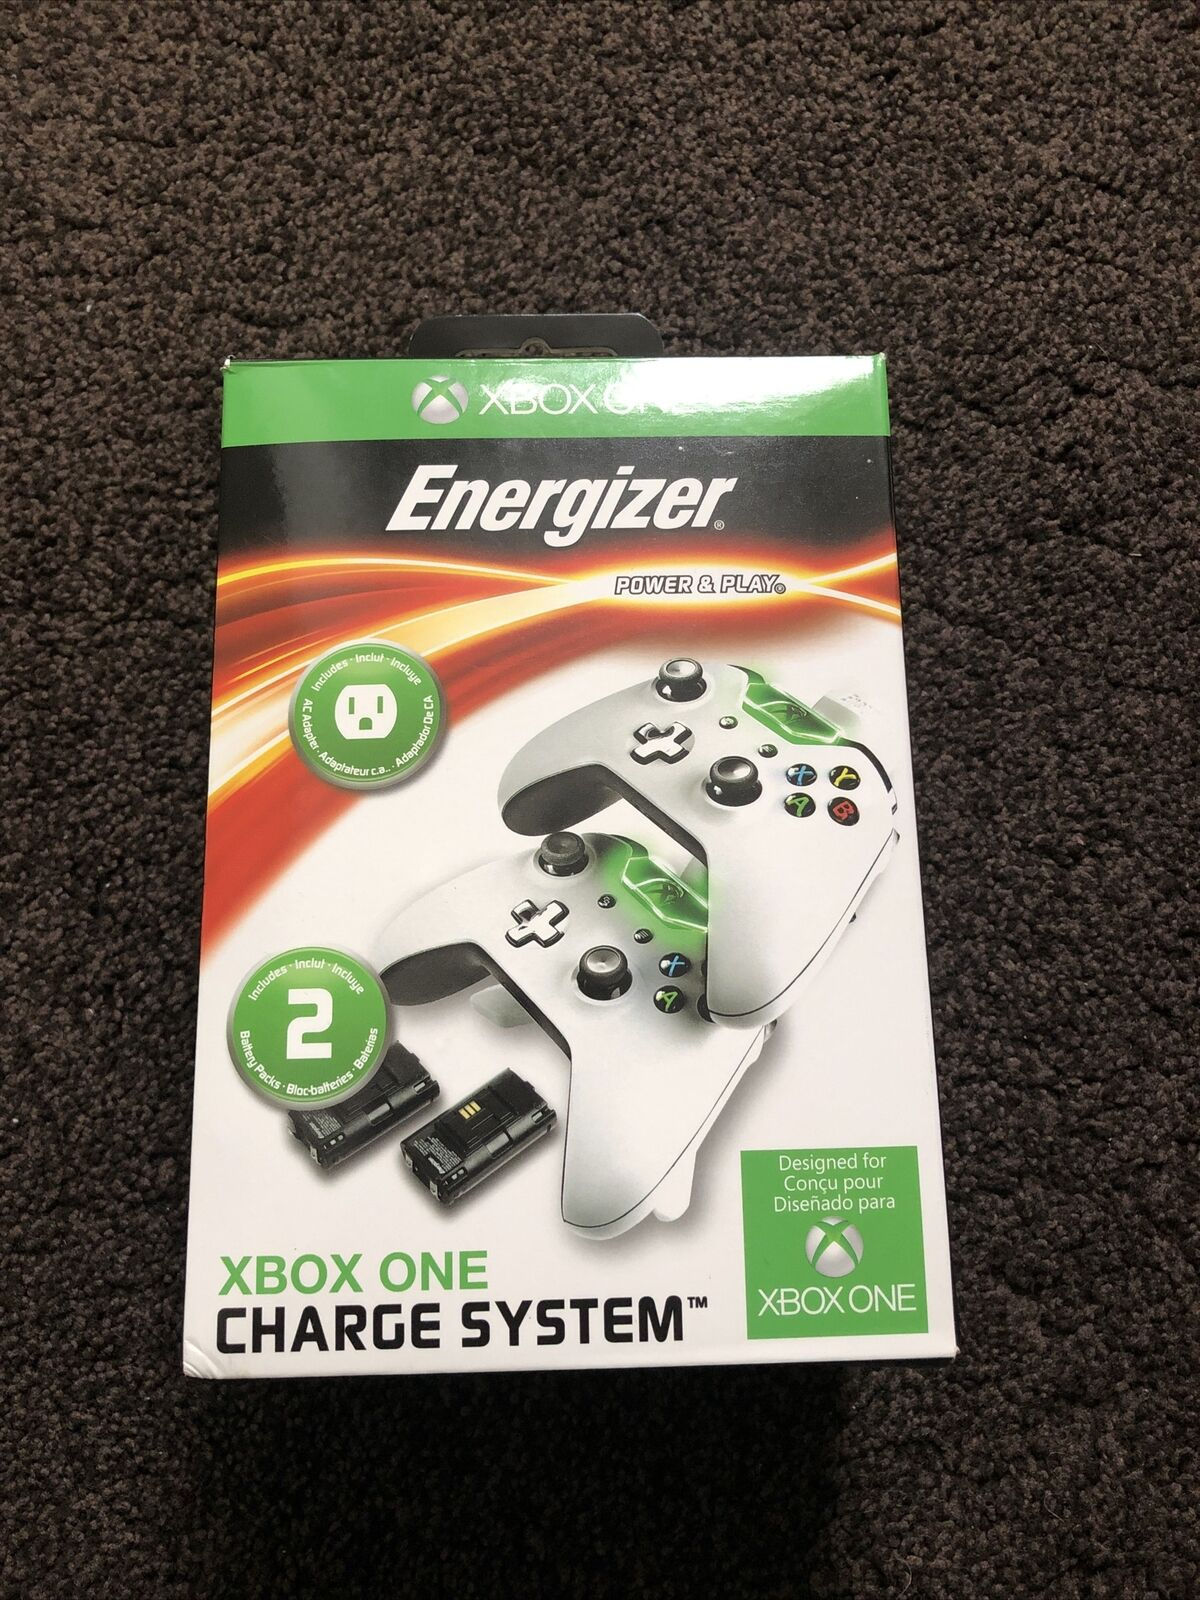 Xbox One Energizer Charging Dock and Batteries (read description)